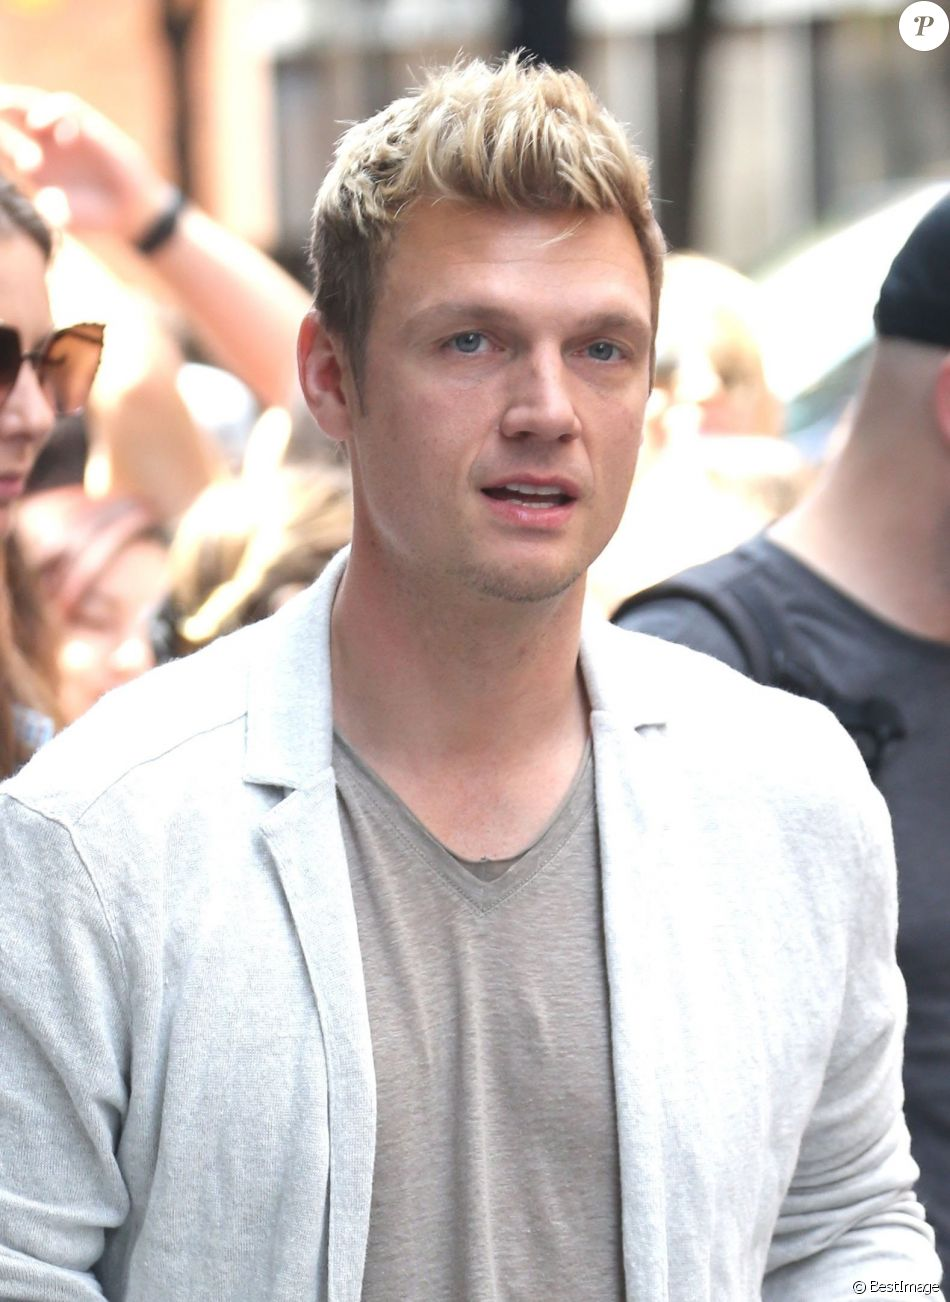 Nick Carter Melissa >> Nick Carter face à de lourdes accusations de viol : L'effroyable témoignage - Purepeople